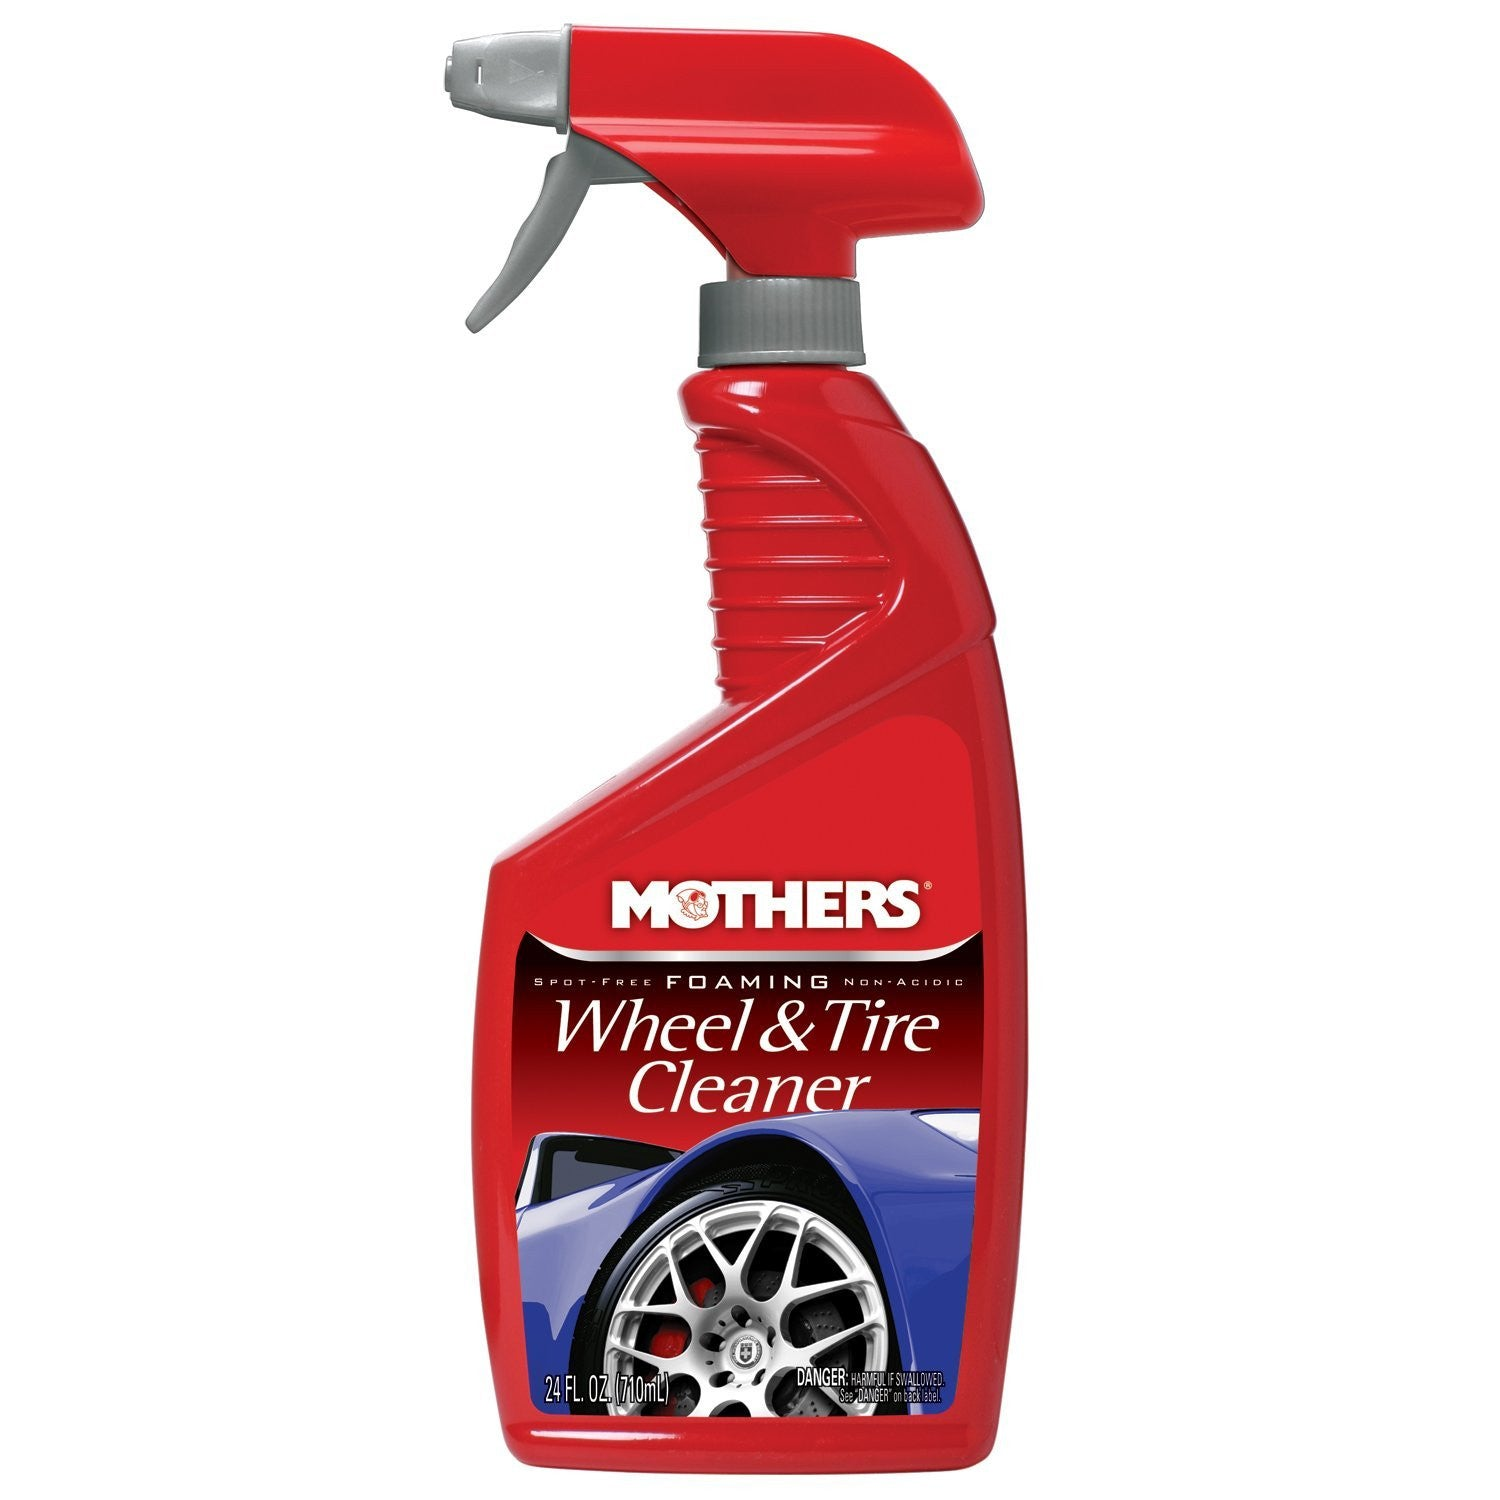 Mothers Foaming Wheel & Tire Cleaner 24 oz.